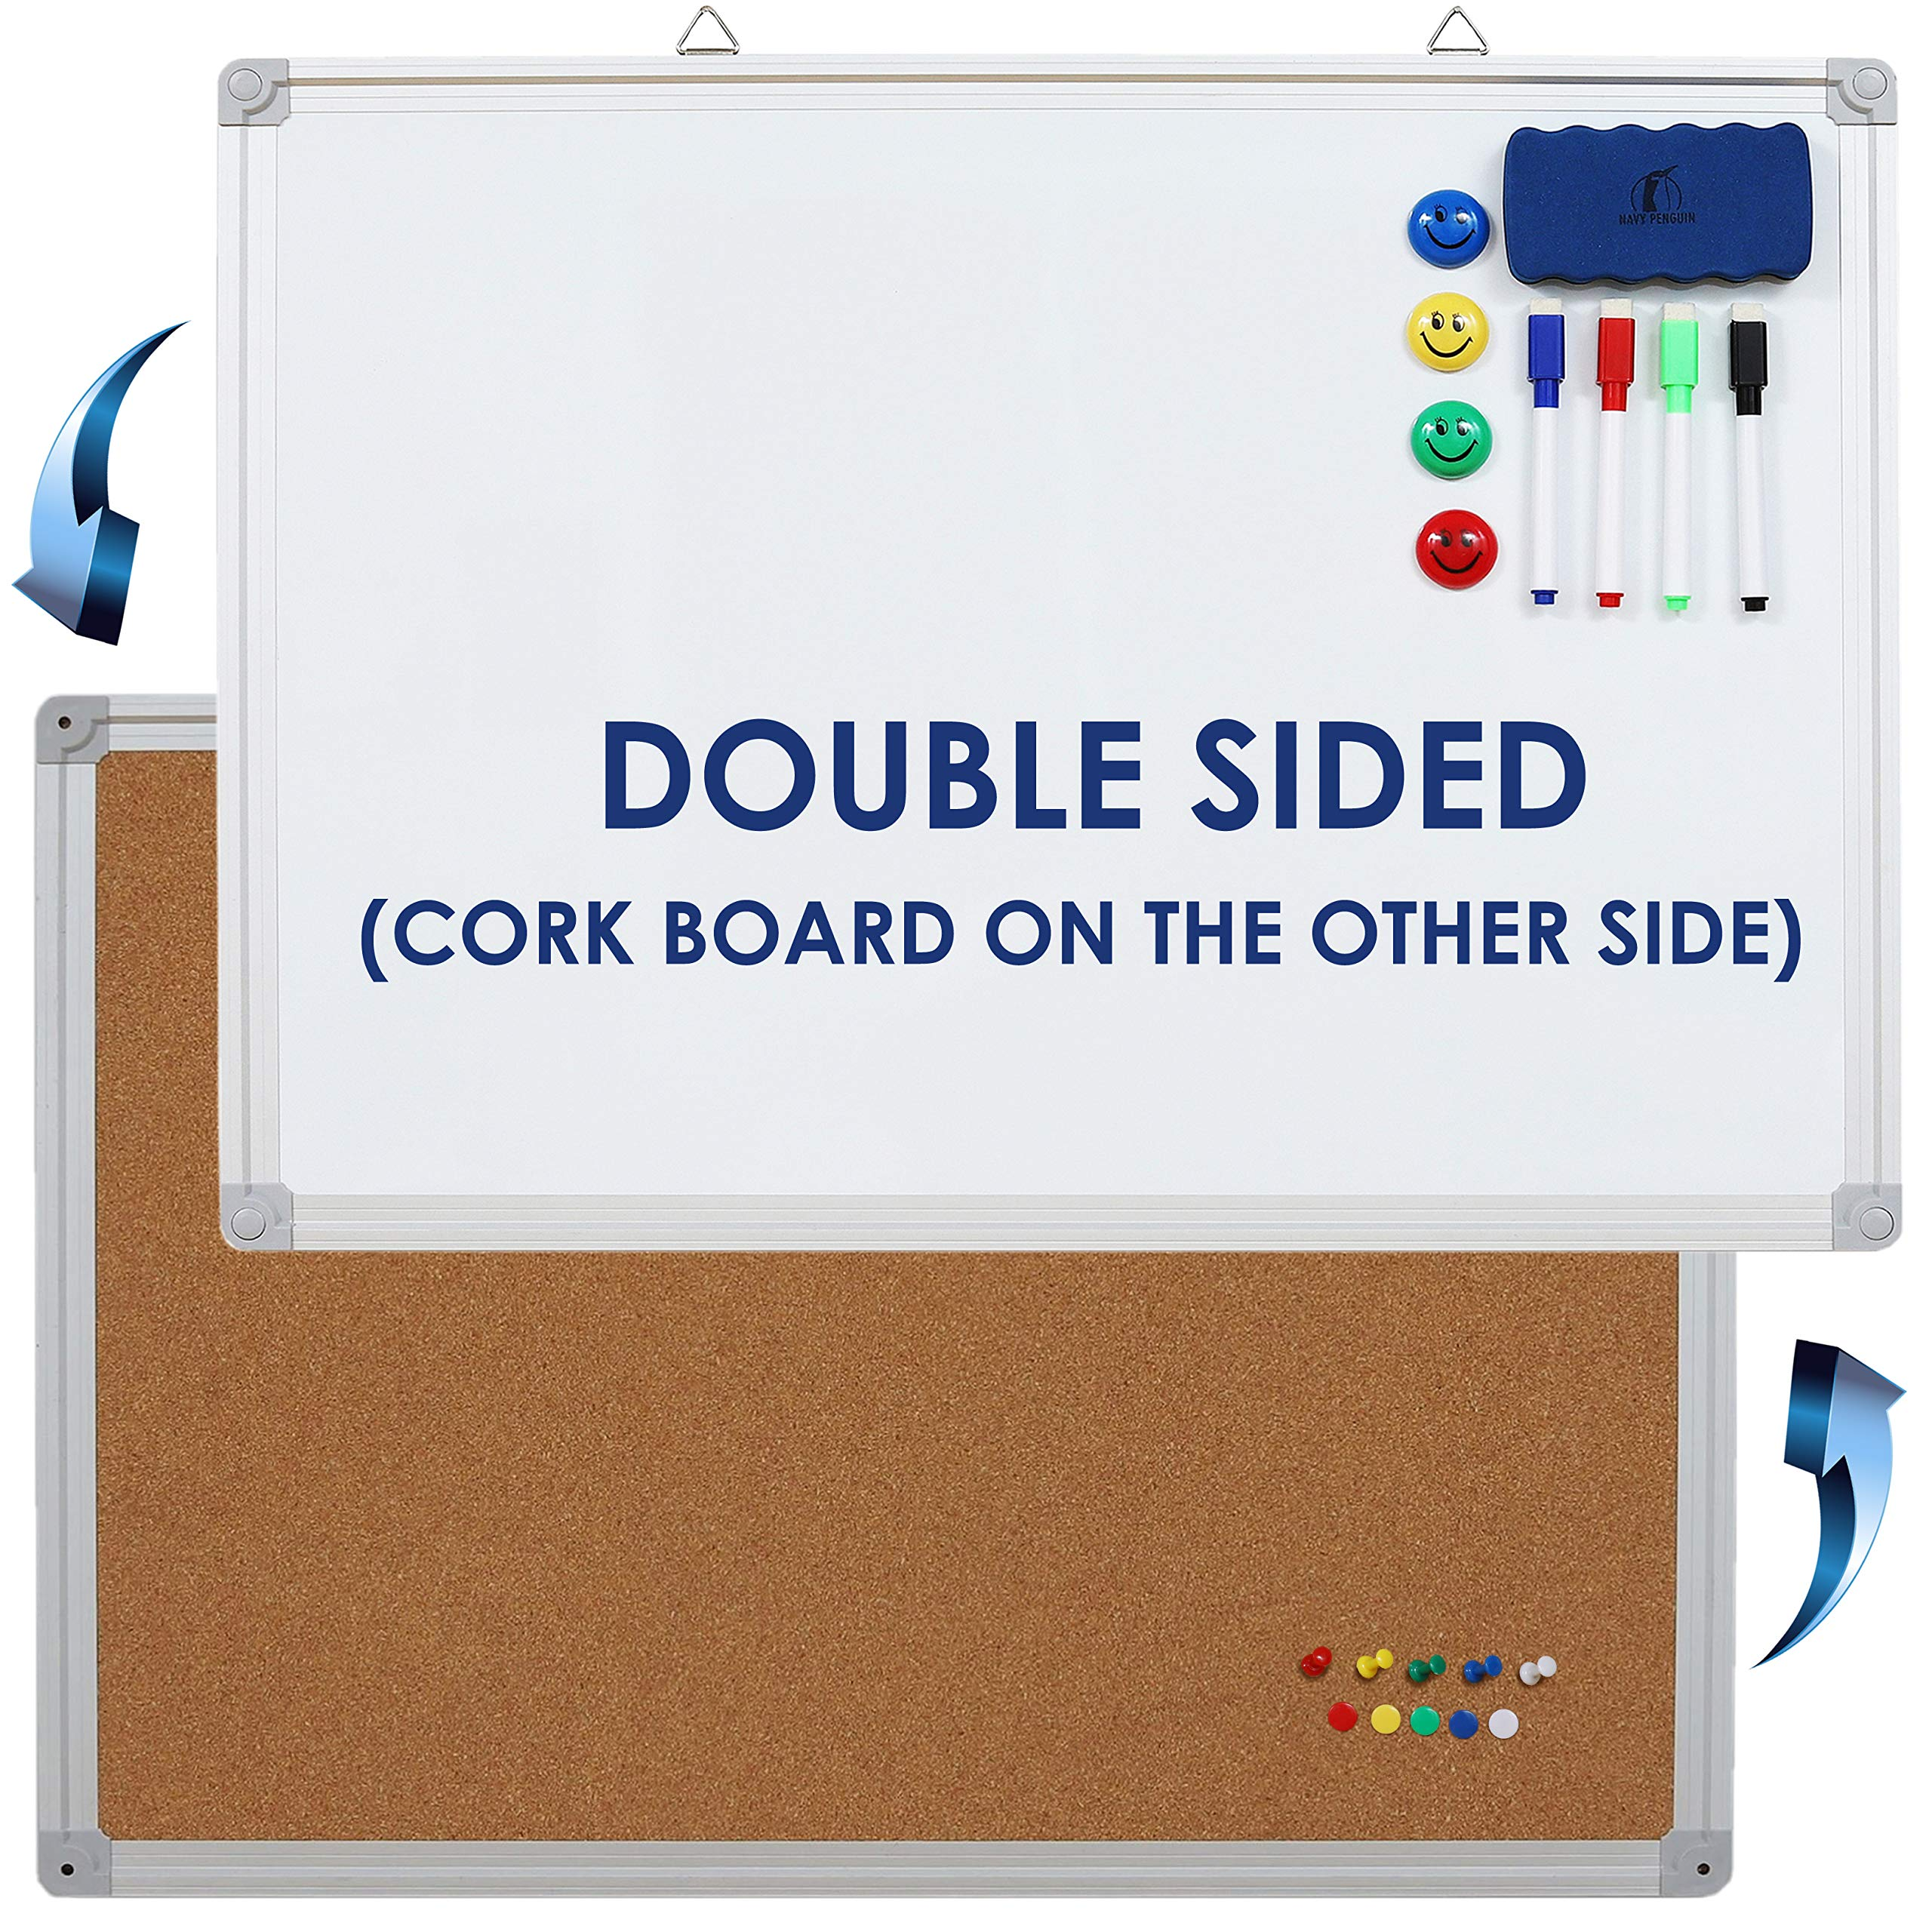 Whiteboard/Cork Board Set Double Sided - 24 x 18'' Dry Erase White Board/Bulletin Board + 1 Magnetic Eraser, 4 Markers, 4 Magnets and 10 Pins - Small Combination Tack Board for Home and Office